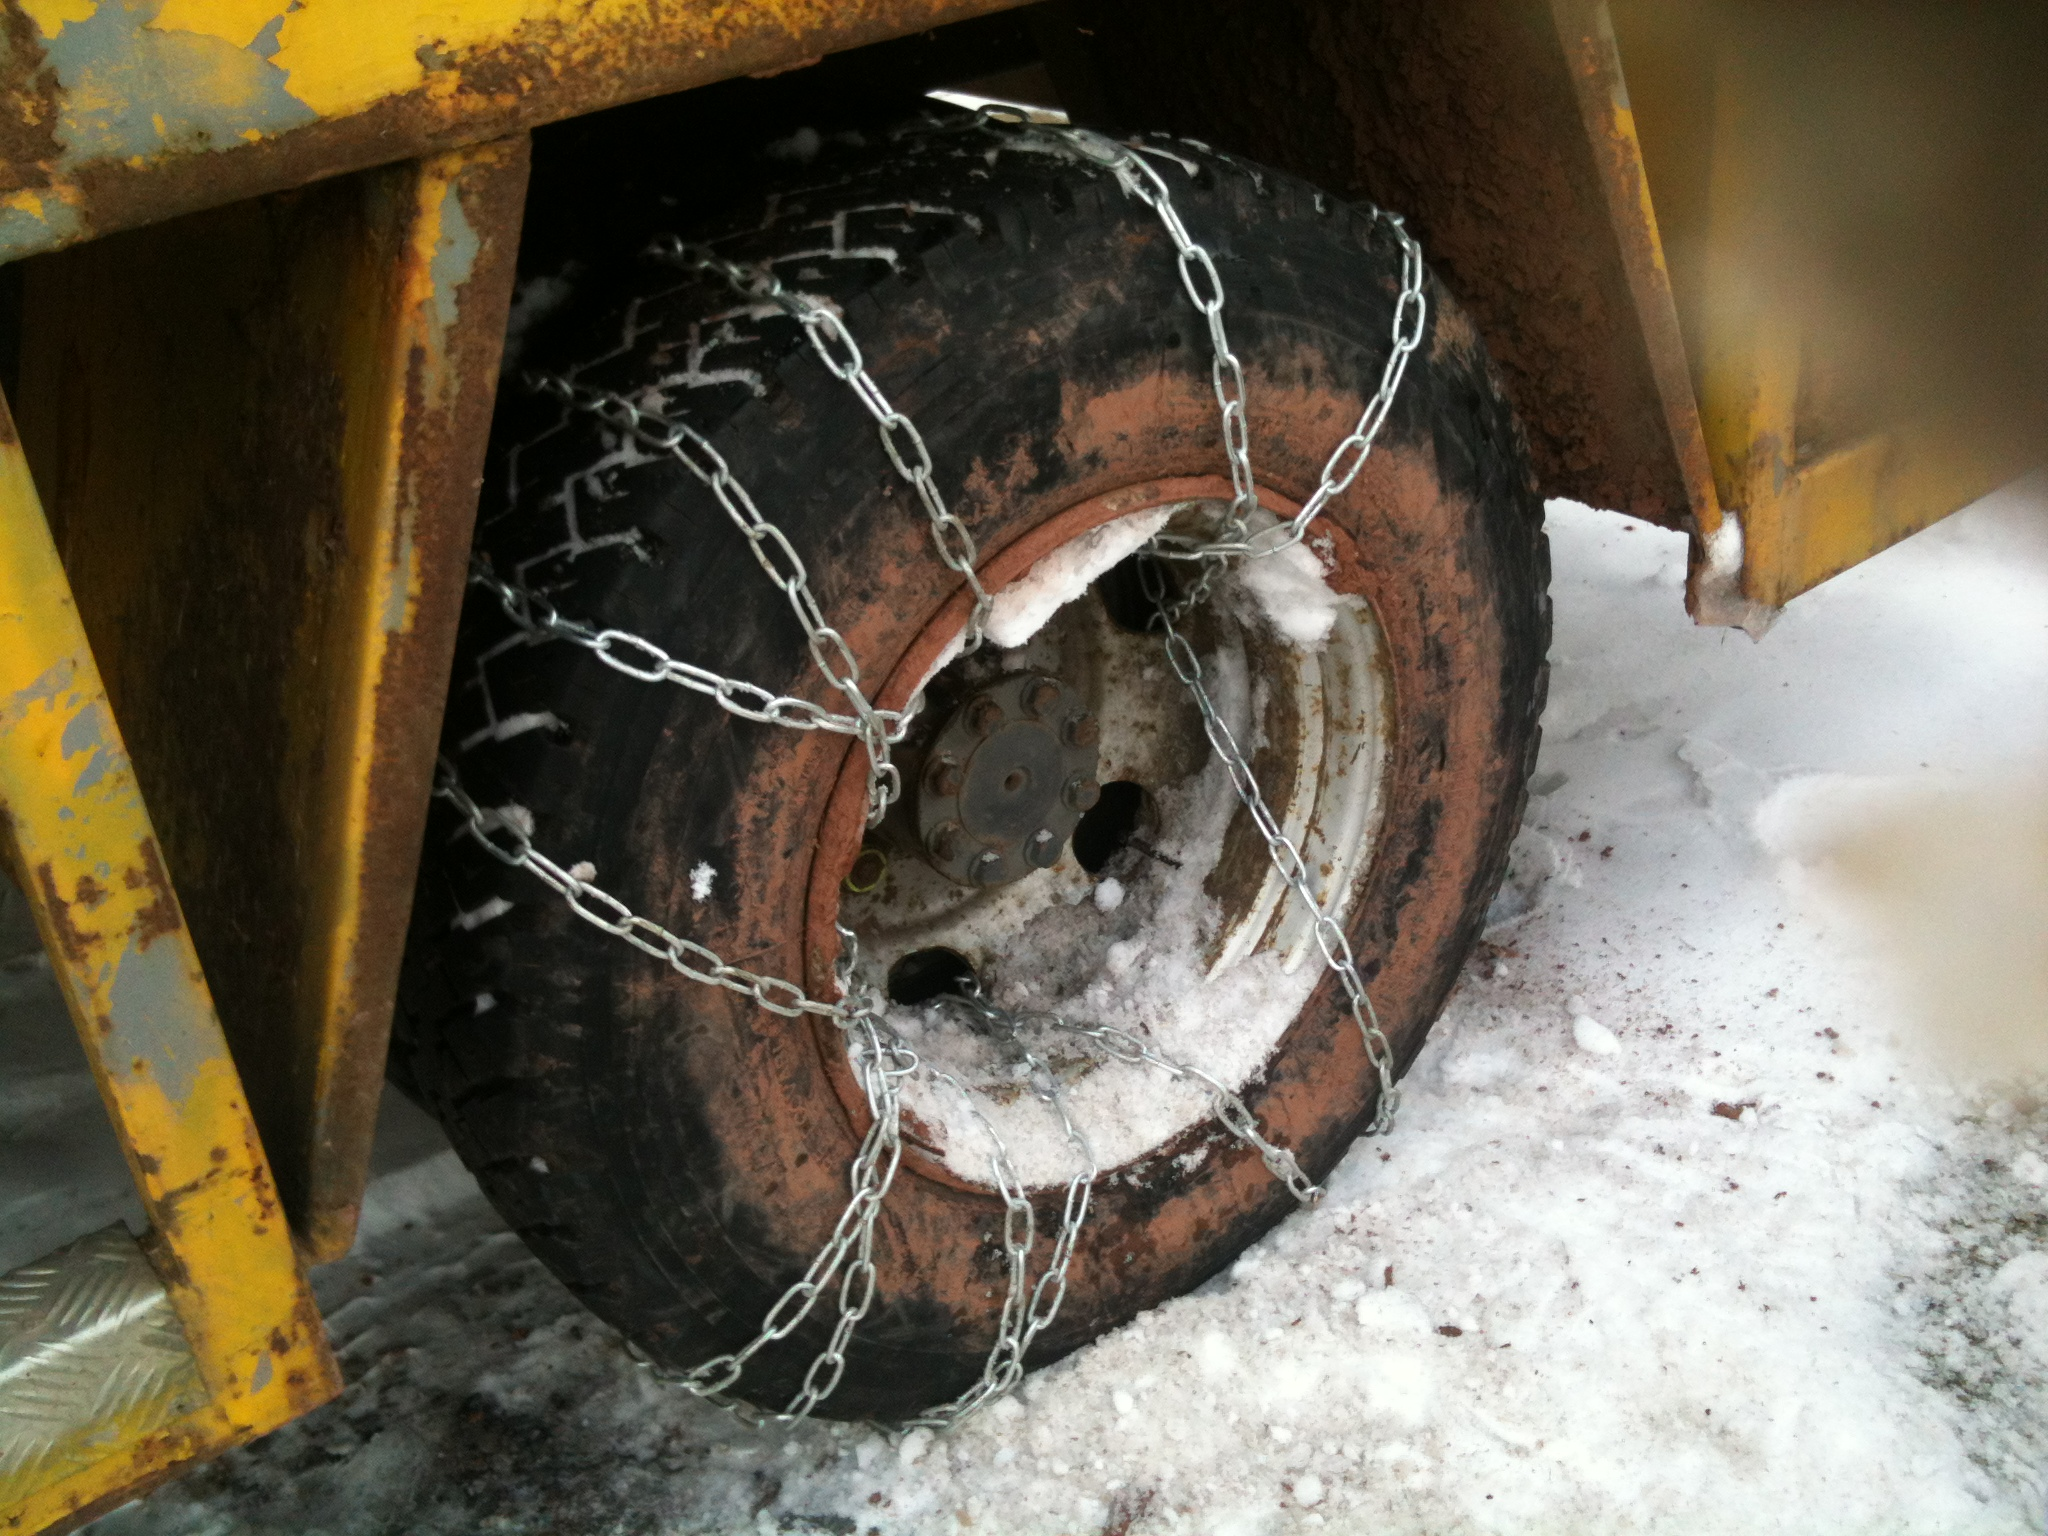 Homemade snowchains